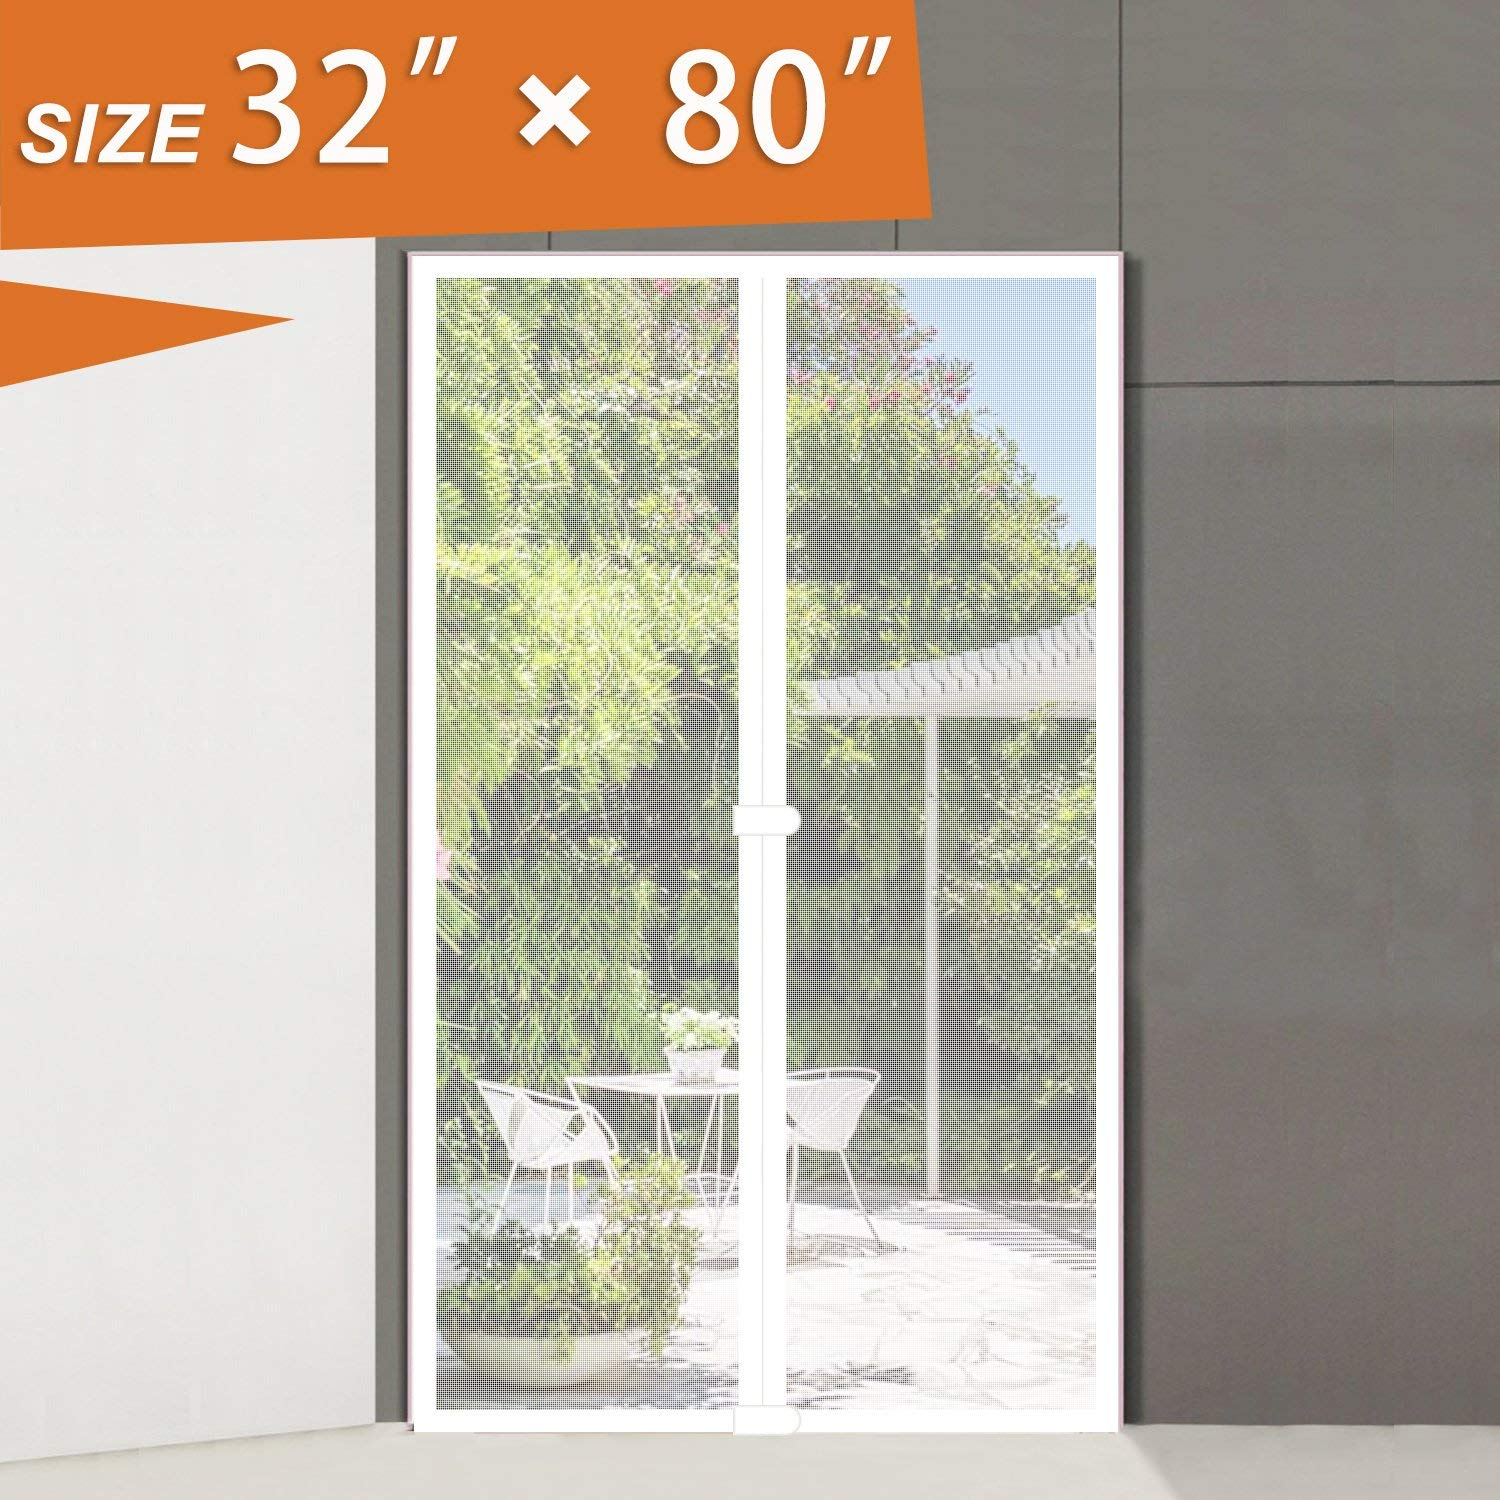 Cheap 32 X 80 Screen Door, Find 32 X 80 Screen Door Deals On ...